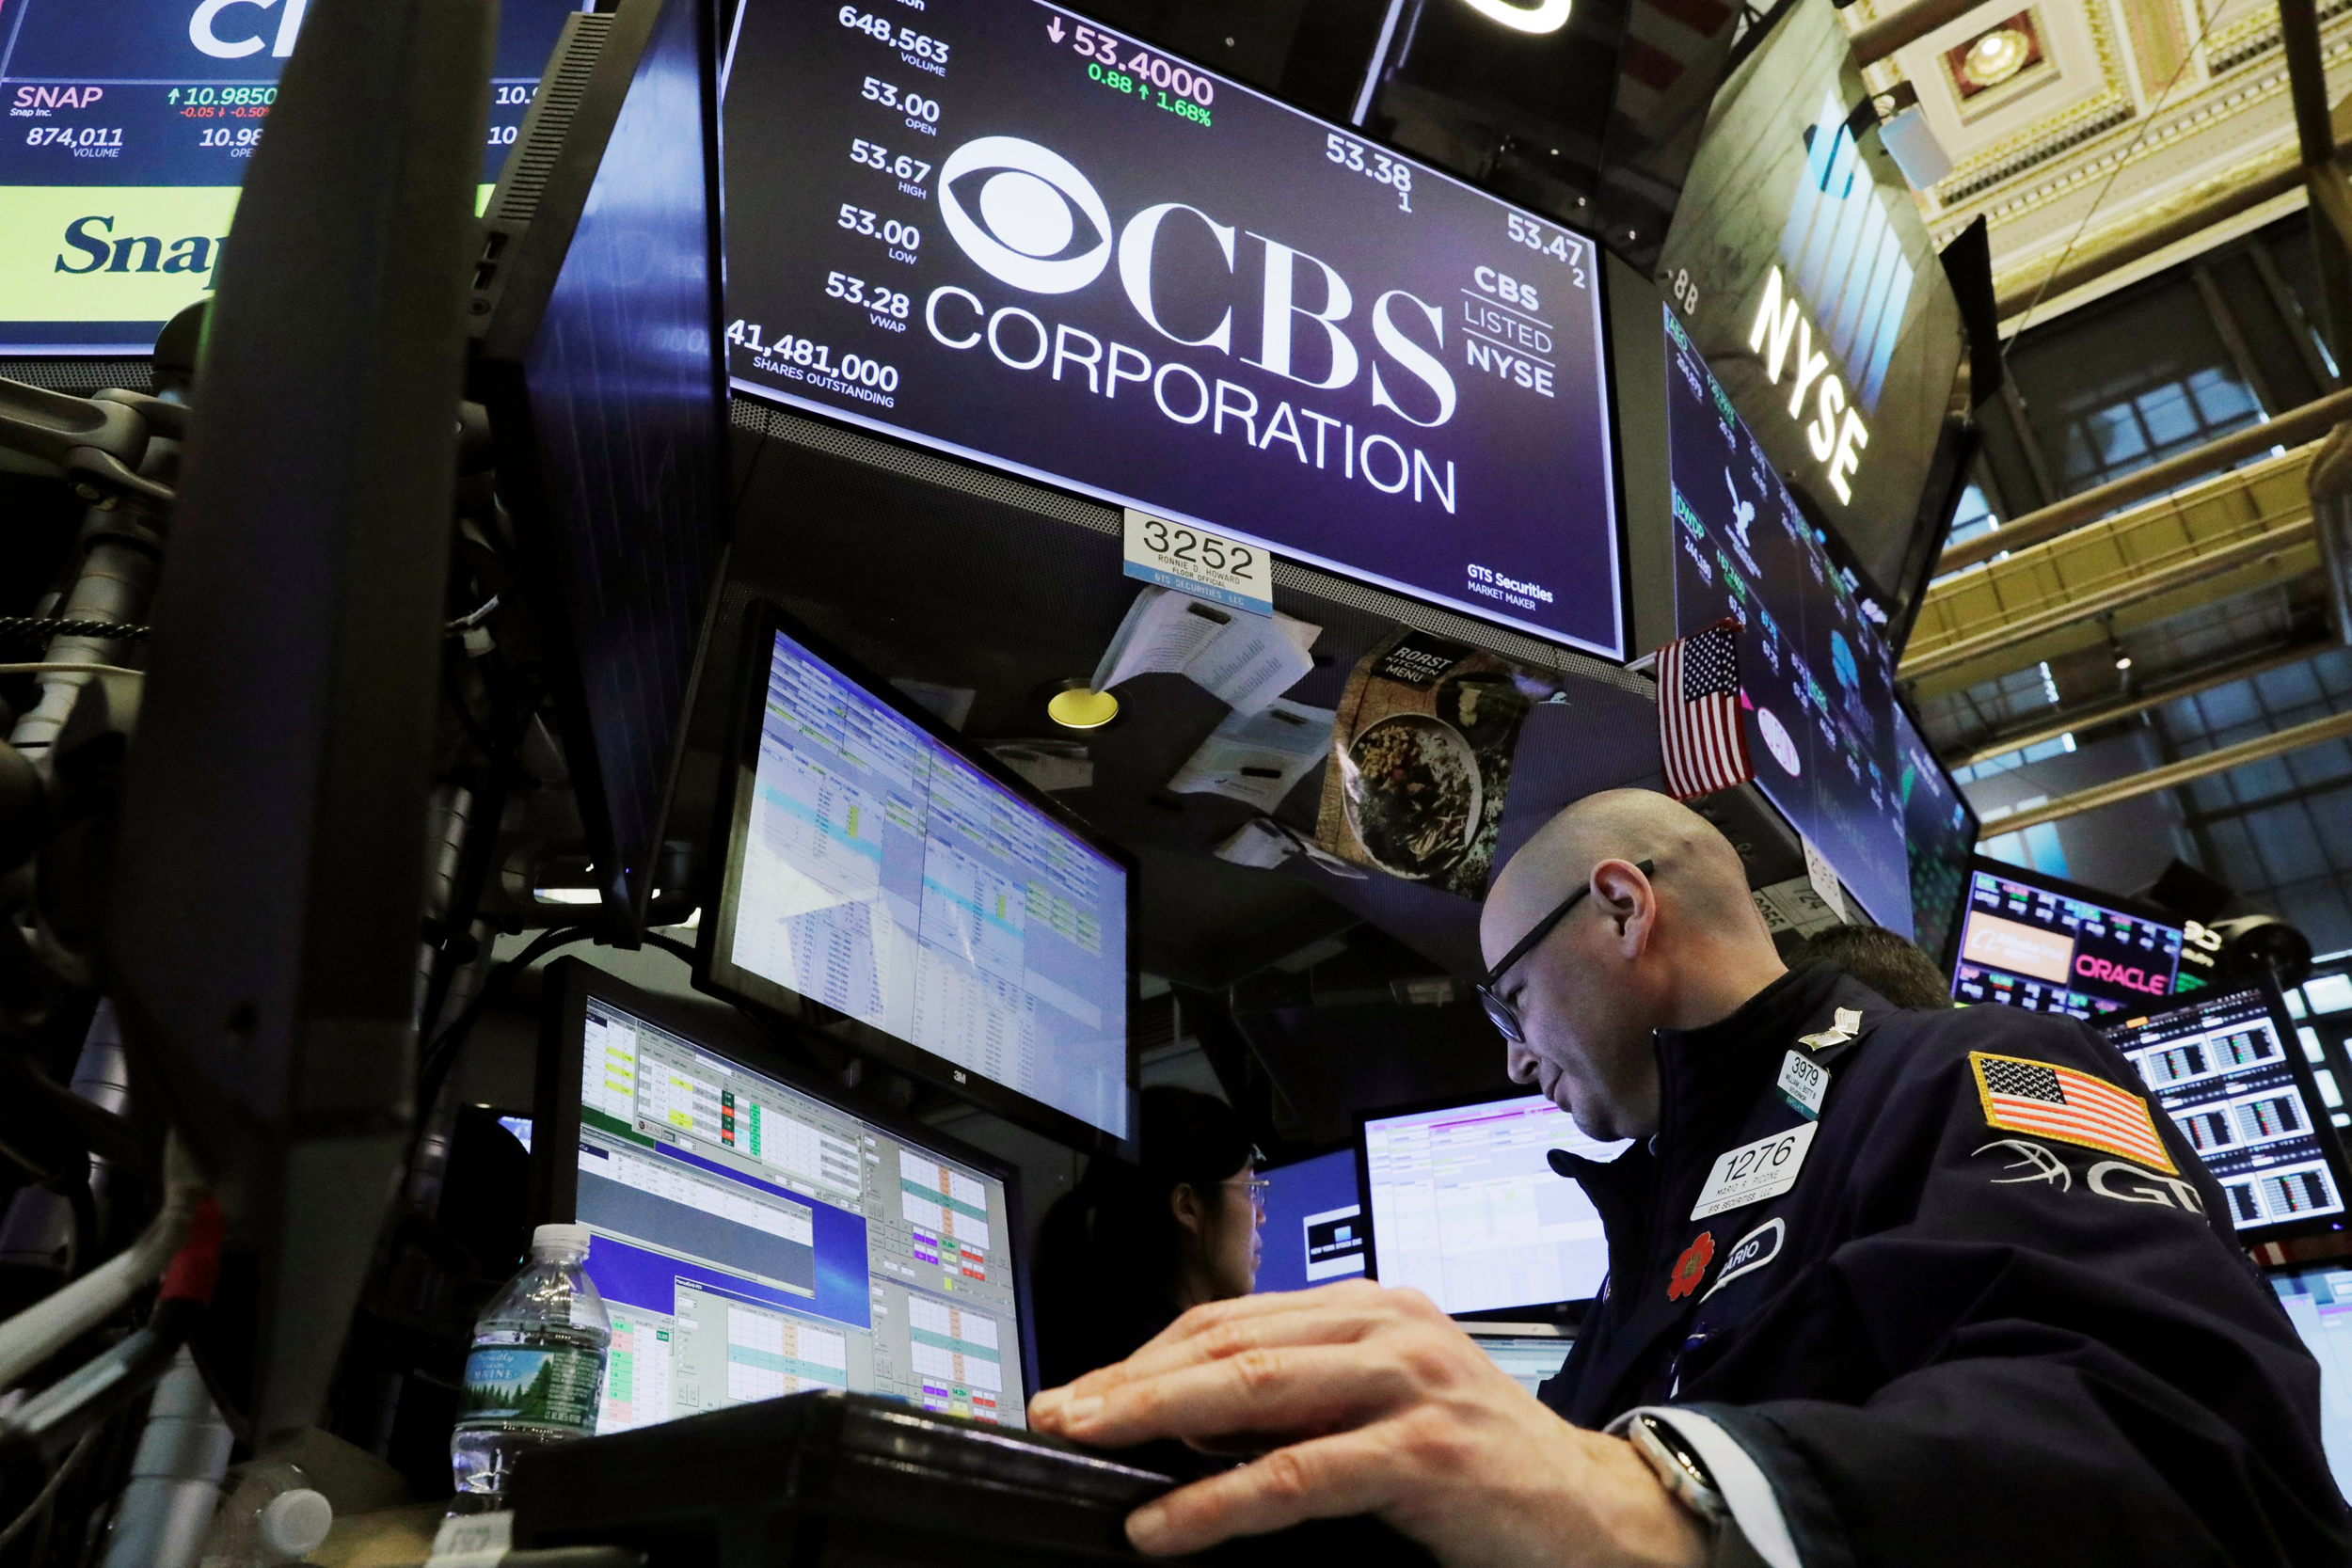 Future-of-CBS-in-limbo-as-parent-company-seeks-to-block-independence-vote